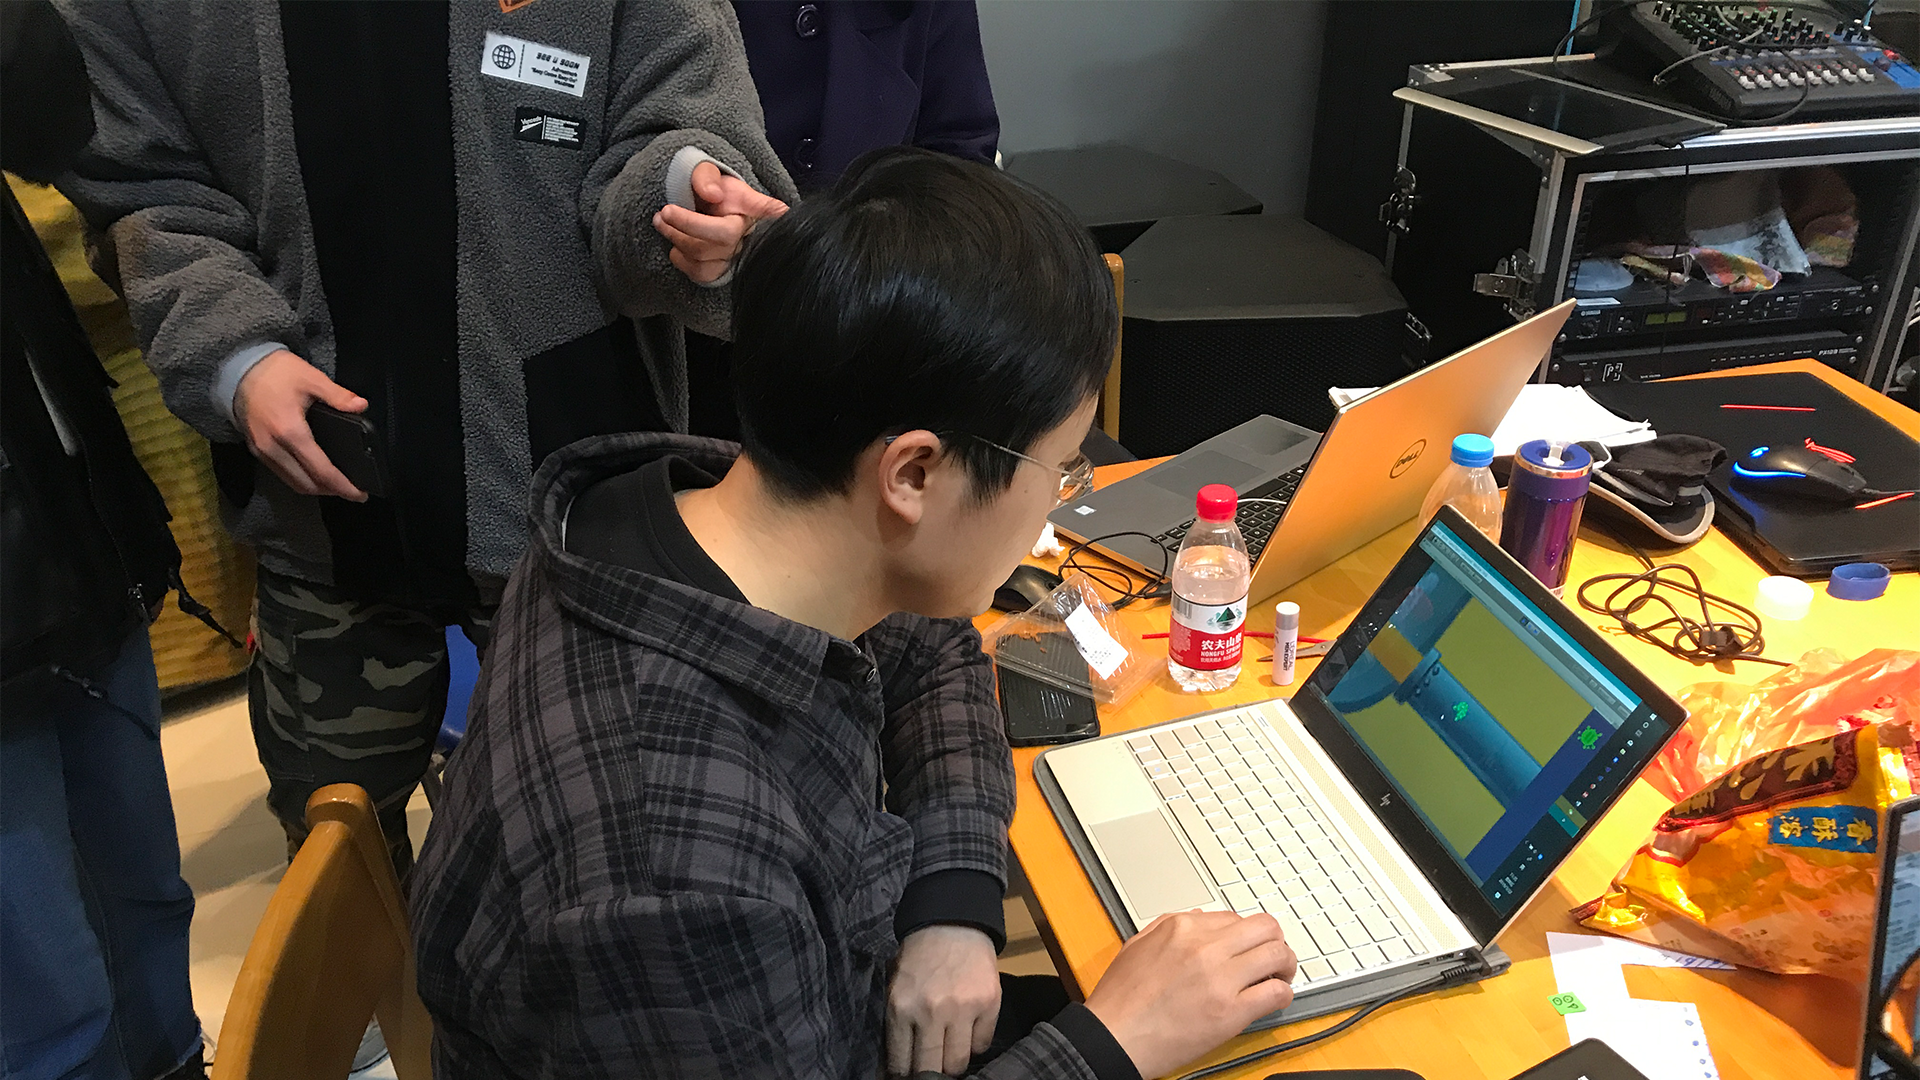 Chinese student testing serious game at Wuxi University